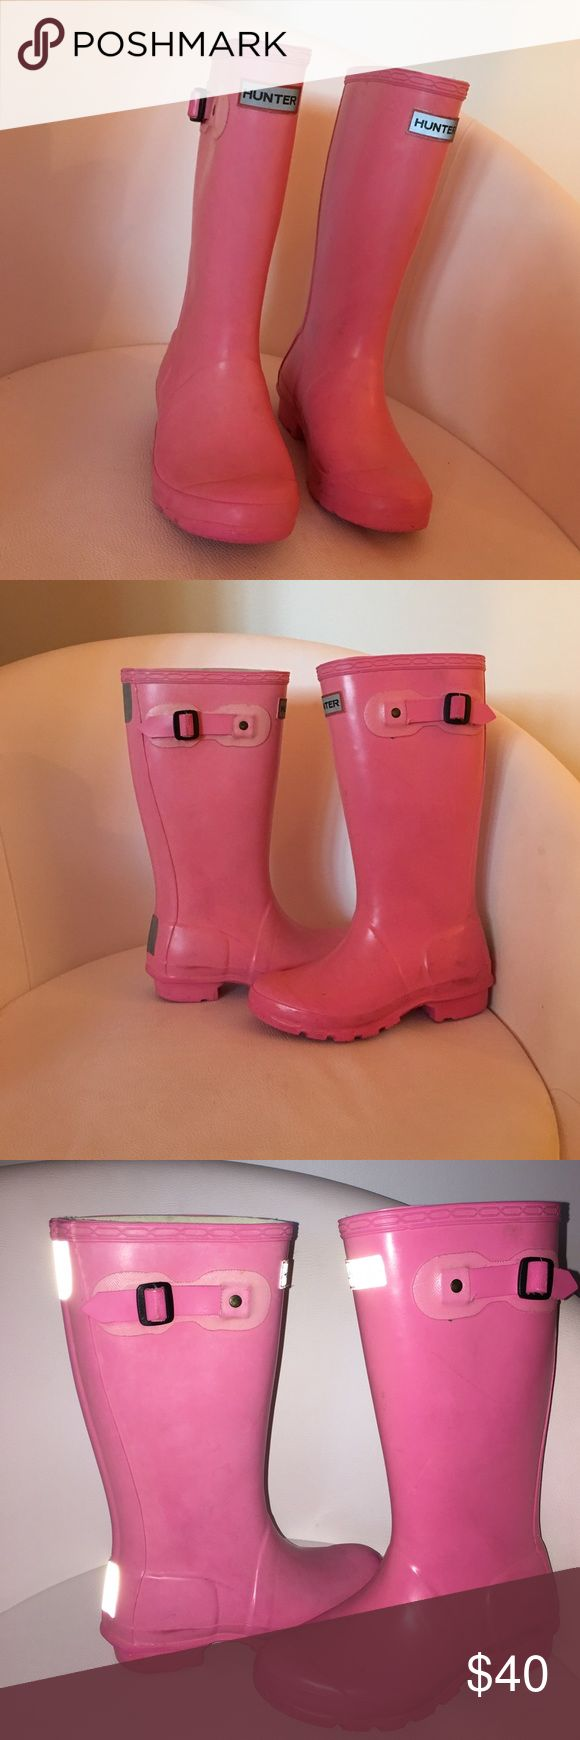 Childrens' pink hunter rain boots Cute pink boots for kids Hunter Boots Shoes Winter & Rain Boots